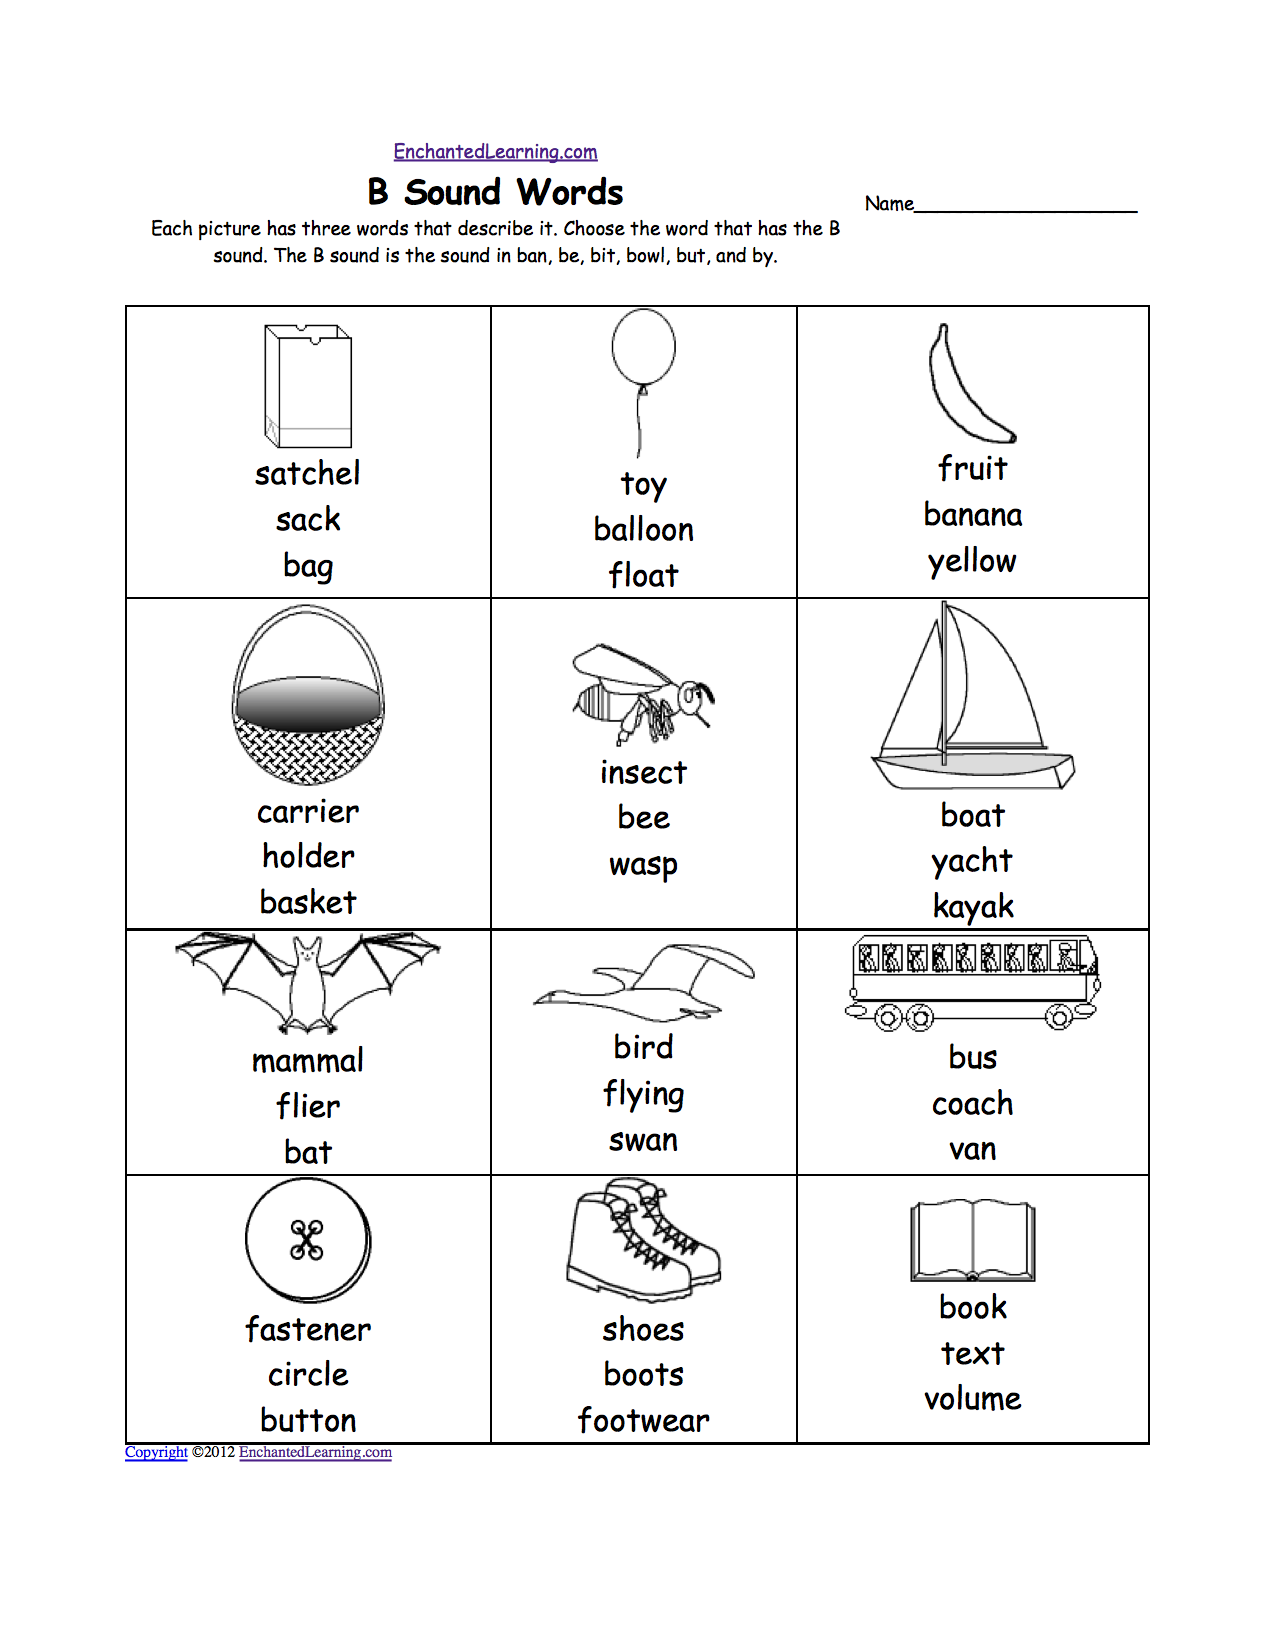 Proatmealus  Splendid Phonics Worksheets Multiple Choice Worksheets To Print  With Likable Quotbquot Sound Phonics Worksheet Multiple Choice Each Picture Has Three Words That Describe It Choose The Word That Has A Quotbquot Sound The Quotbquot Sound Is The Sound  With Divine Free Ks Worksheets Also Class  Maths Worksheets In Addition Esl Pdf Grammar Worksheets And Animal Habitats Worksheet As Well As Uppercase Alphabet Worksheets Additionally Phonics Phase  Worksheets From Enchantedlearningcom With Proatmealus  Likable Phonics Worksheets Multiple Choice Worksheets To Print  With Divine Quotbquot Sound Phonics Worksheet Multiple Choice Each Picture Has Three Words That Describe It Choose The Word That Has A Quotbquot Sound The Quotbquot Sound Is The Sound  And Splendid Free Ks Worksheets Also Class  Maths Worksheets In Addition Esl Pdf Grammar Worksheets From Enchantedlearningcom